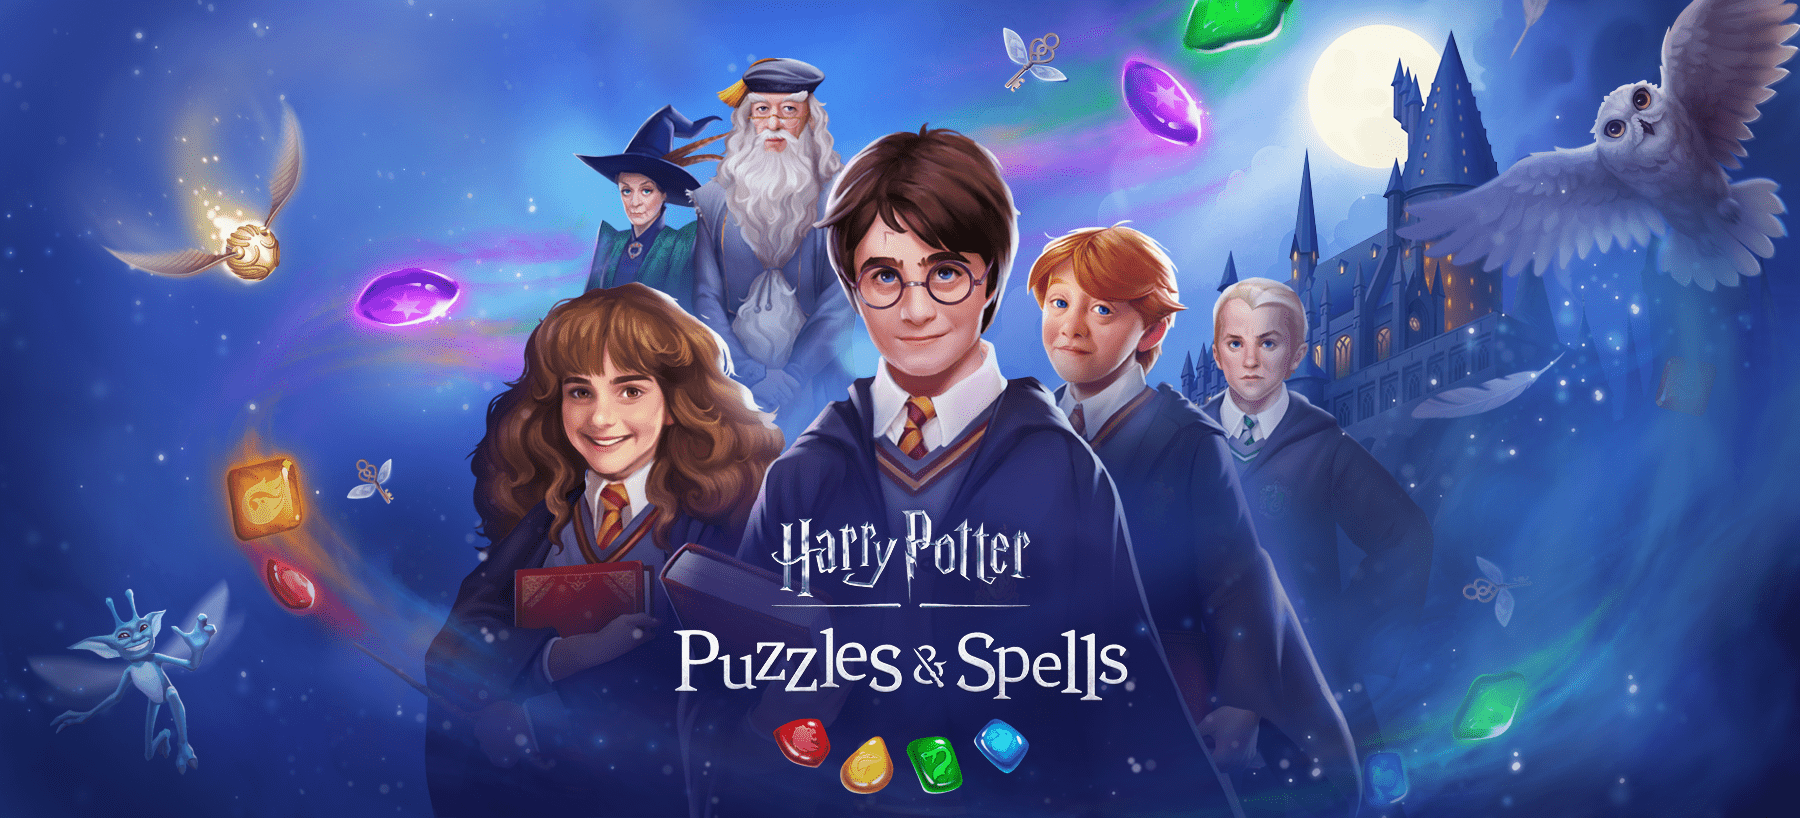 Capture d'écran Harry Potter: Puzzles and Spells iOS